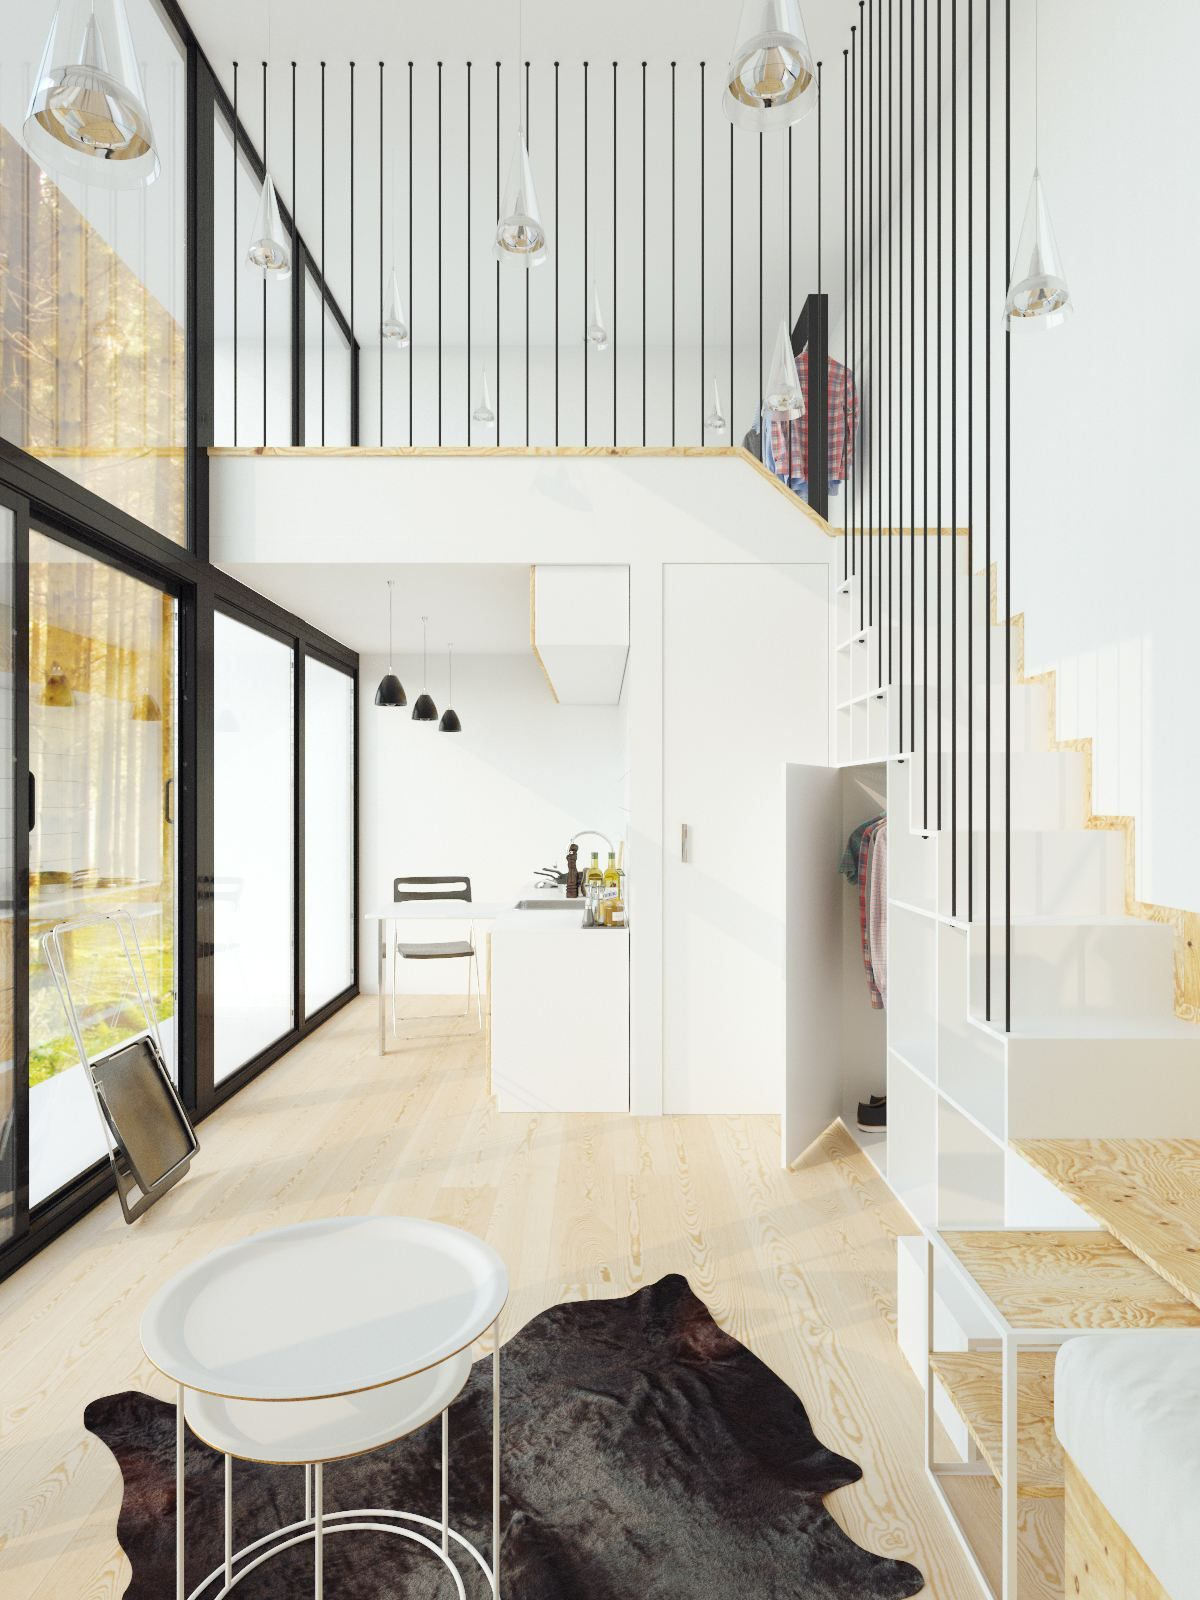 Small Homes That Use Lofts To Gain More Floor Space | Tall ceilings ...